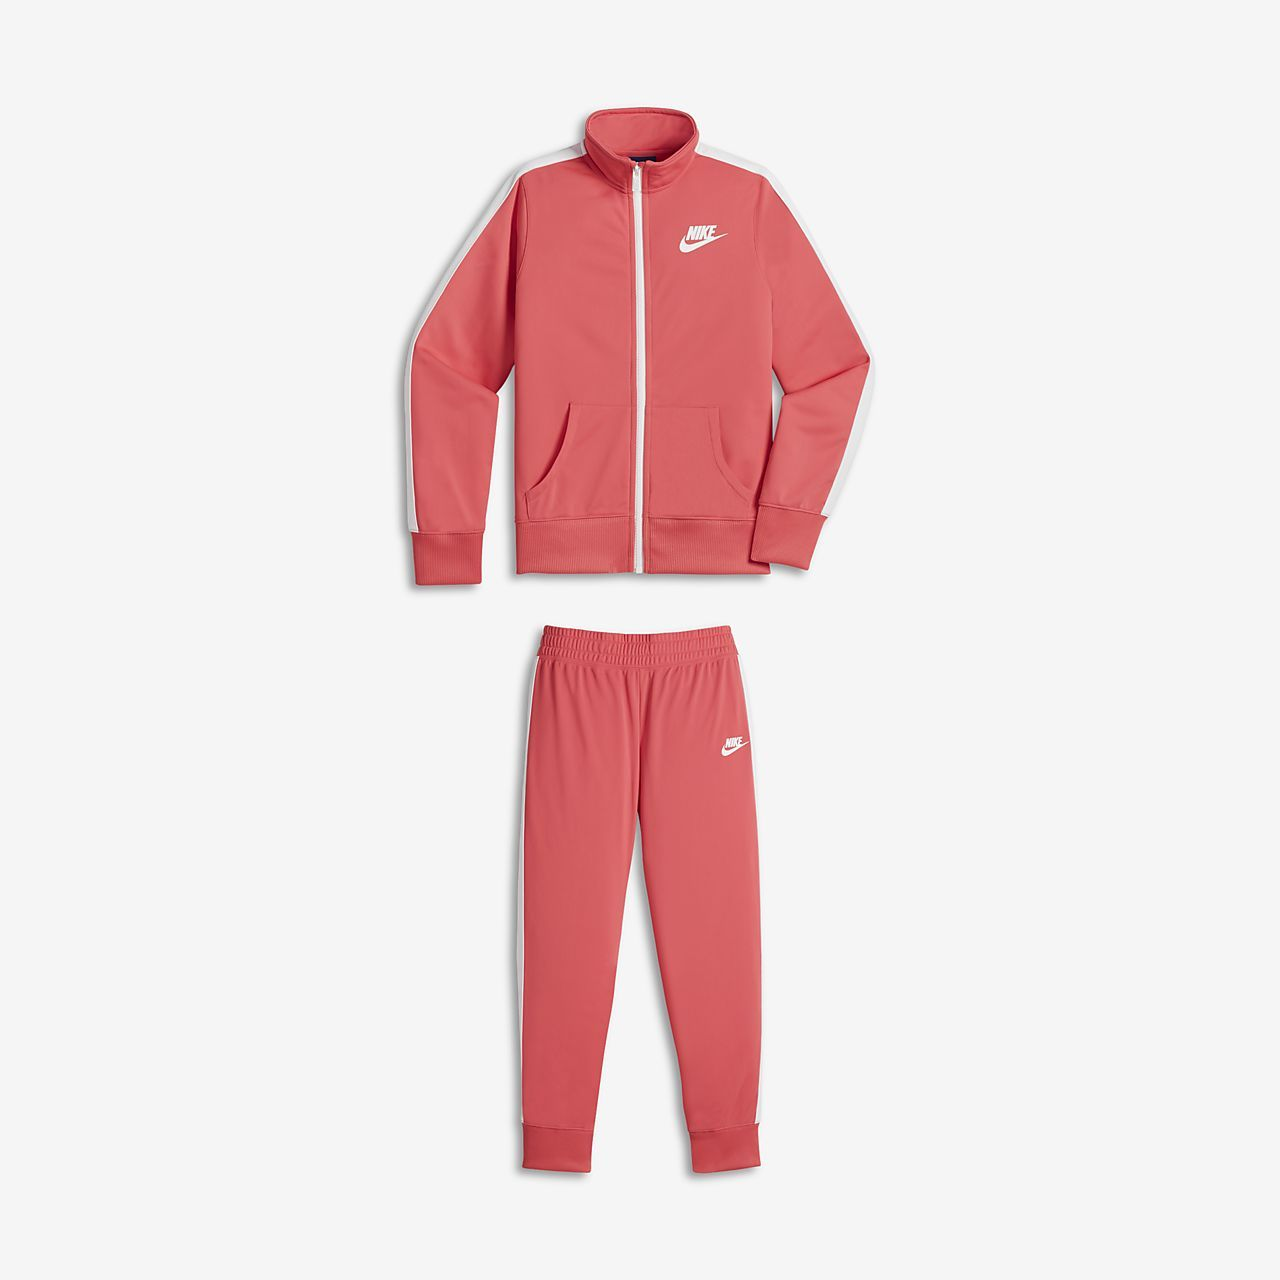 Nike Sportswear Warm-Up Big Kids  (Girls ) Track Suit  857a3c296